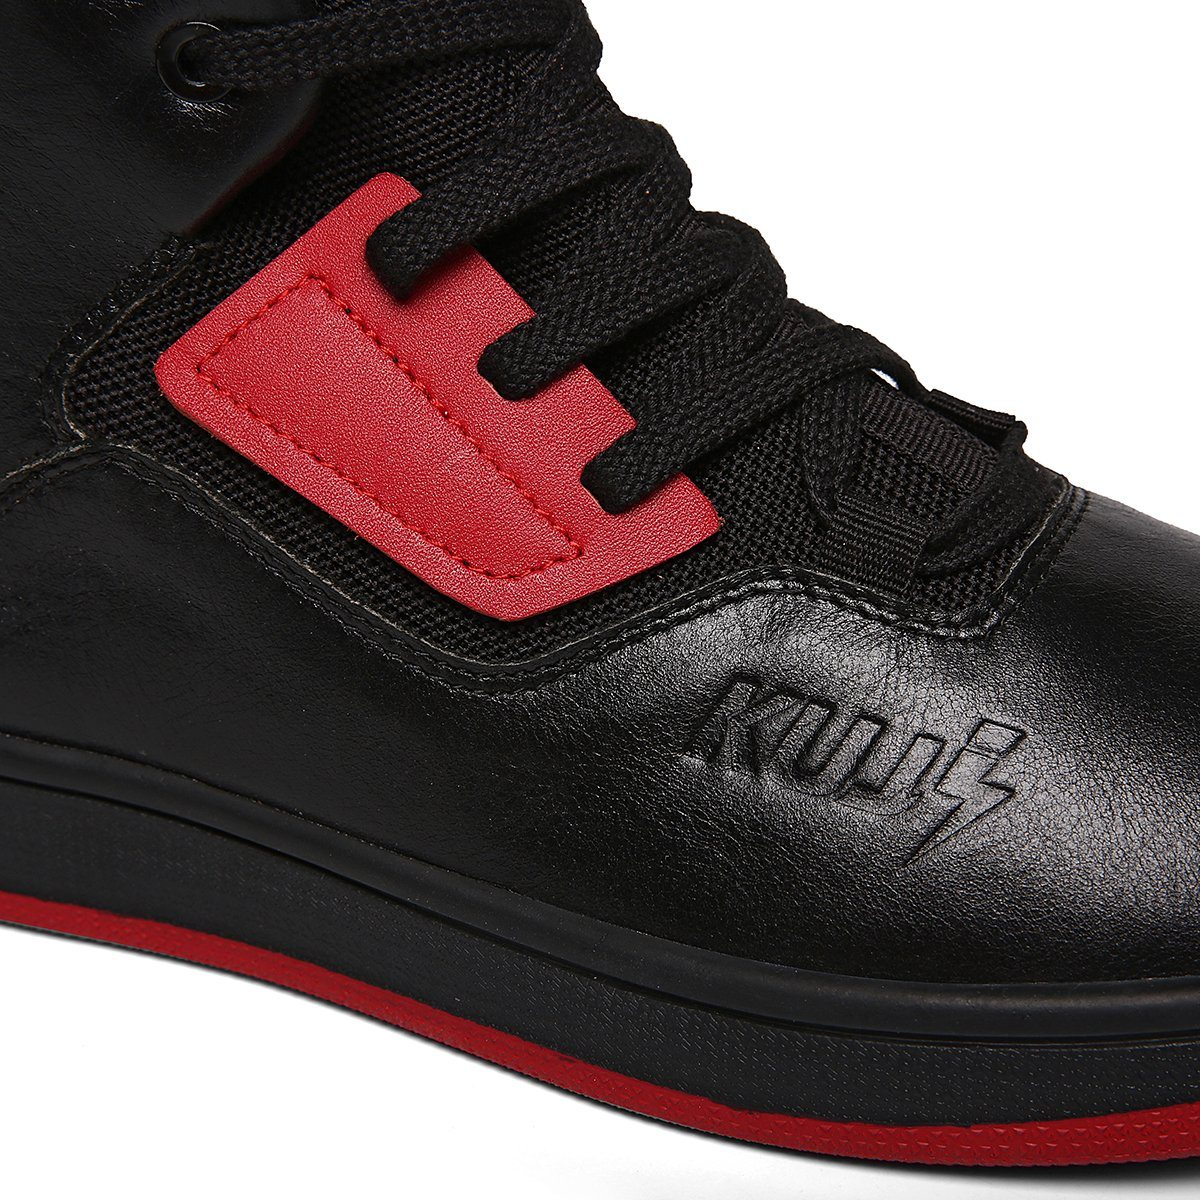 KUJI-Solered High Tops